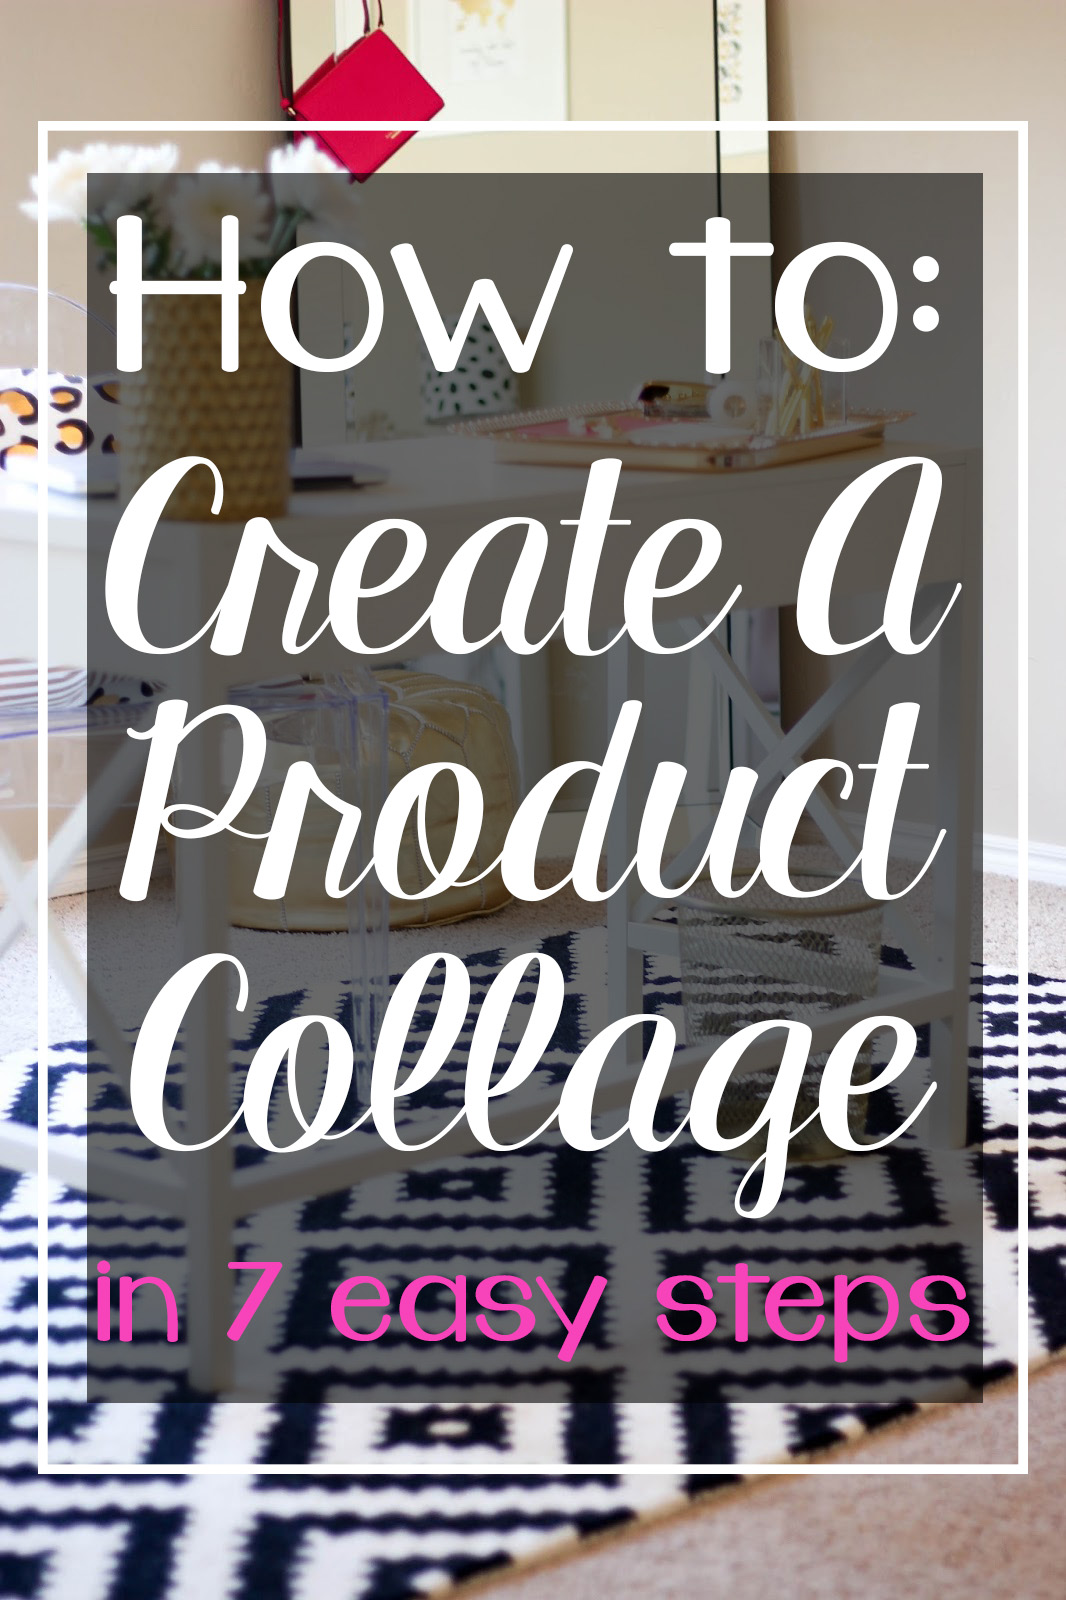 How To Create Bohemian Chic Interiors: Blogging Tip: Create A Product Collage In 7 Easy Steps